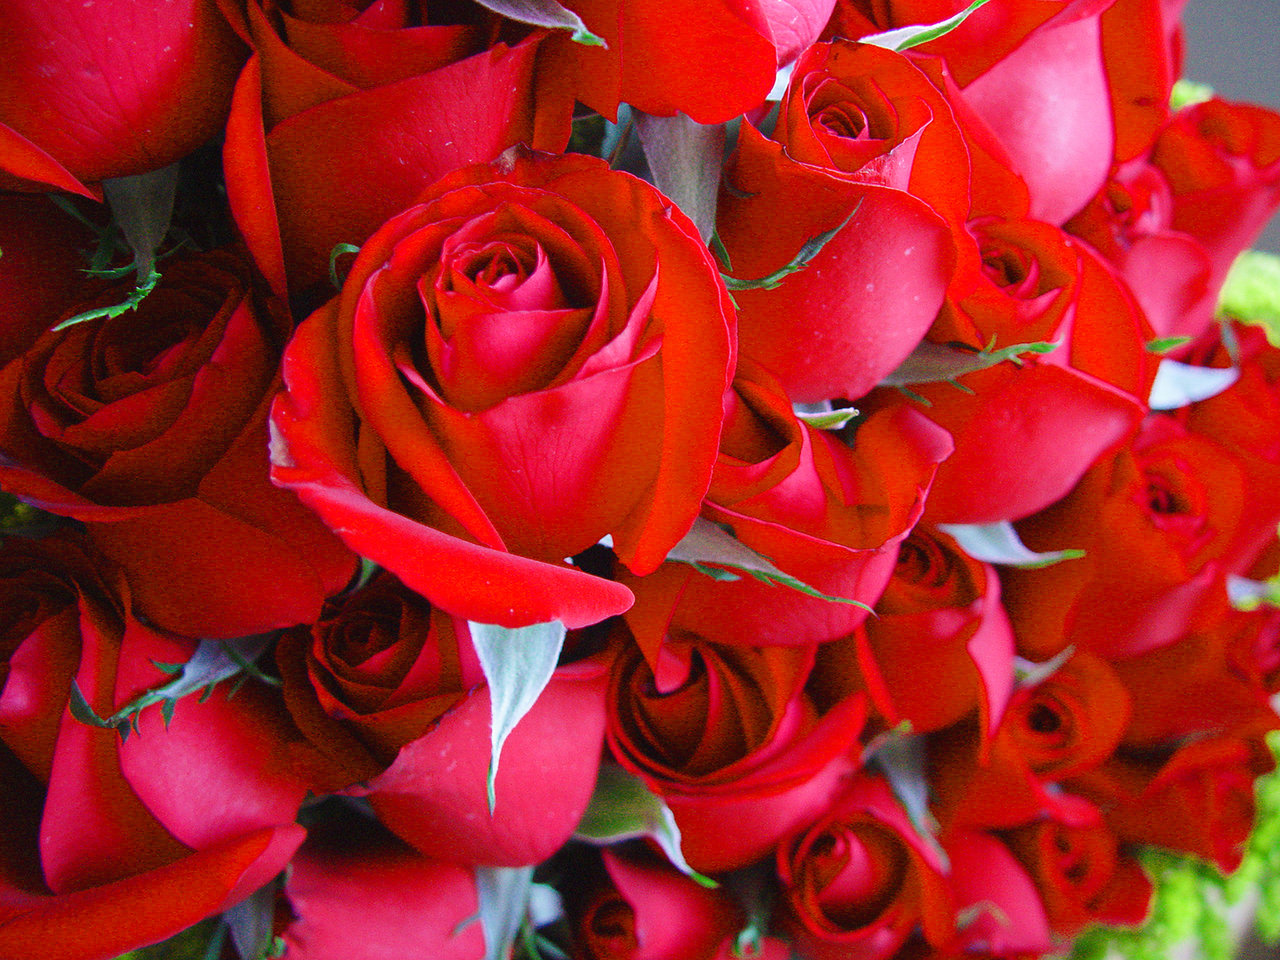 Valentine's Day and red roses